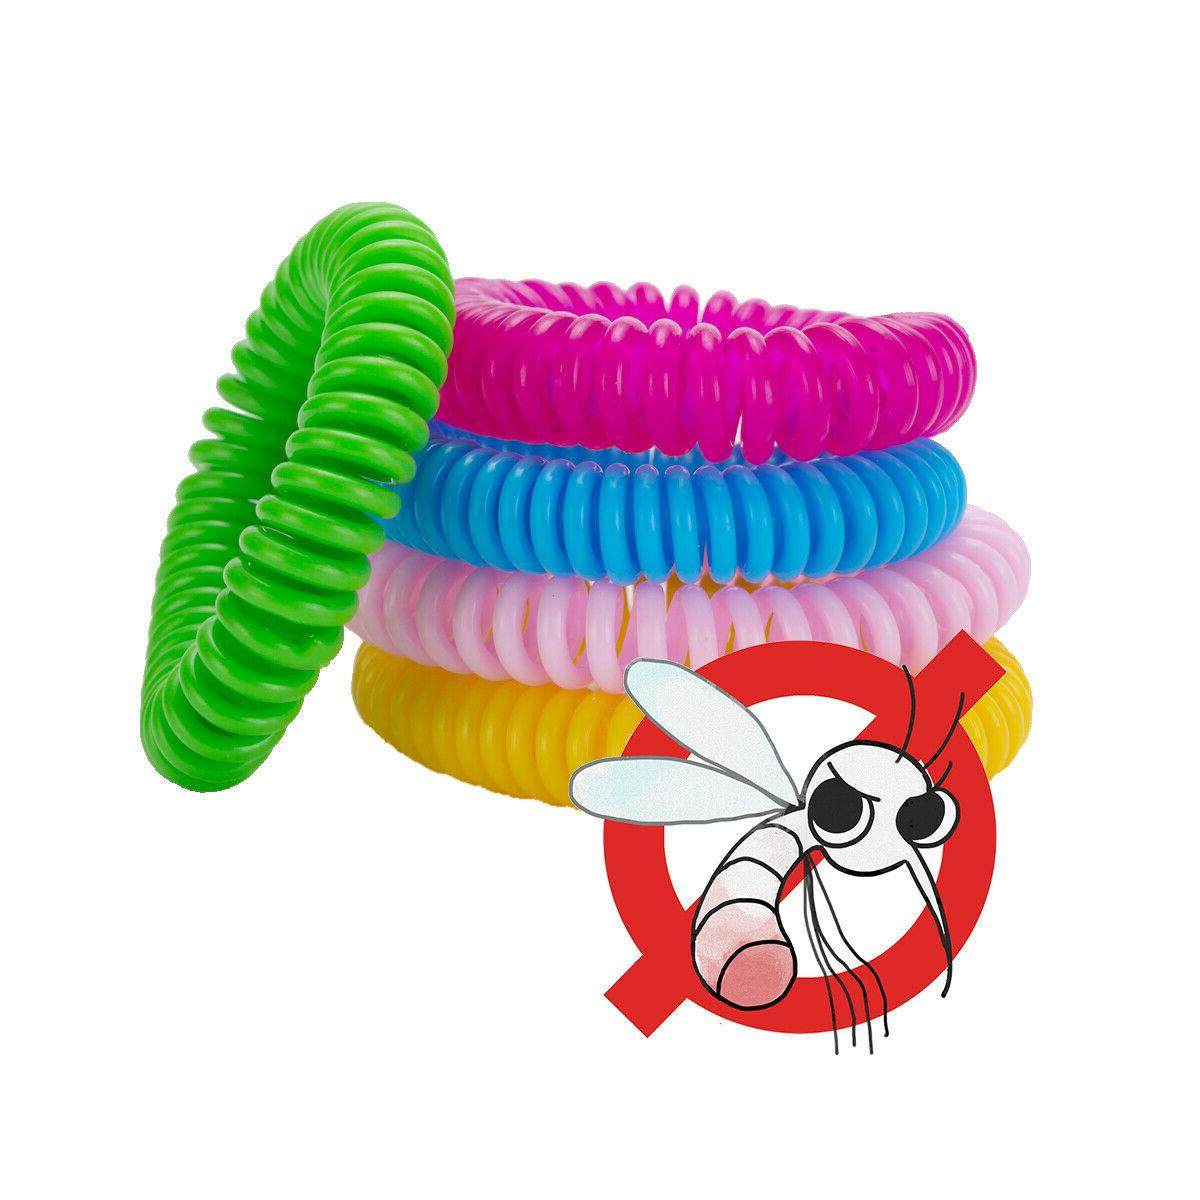 10 Repellent Bracelet Bug Protection Deet-Free